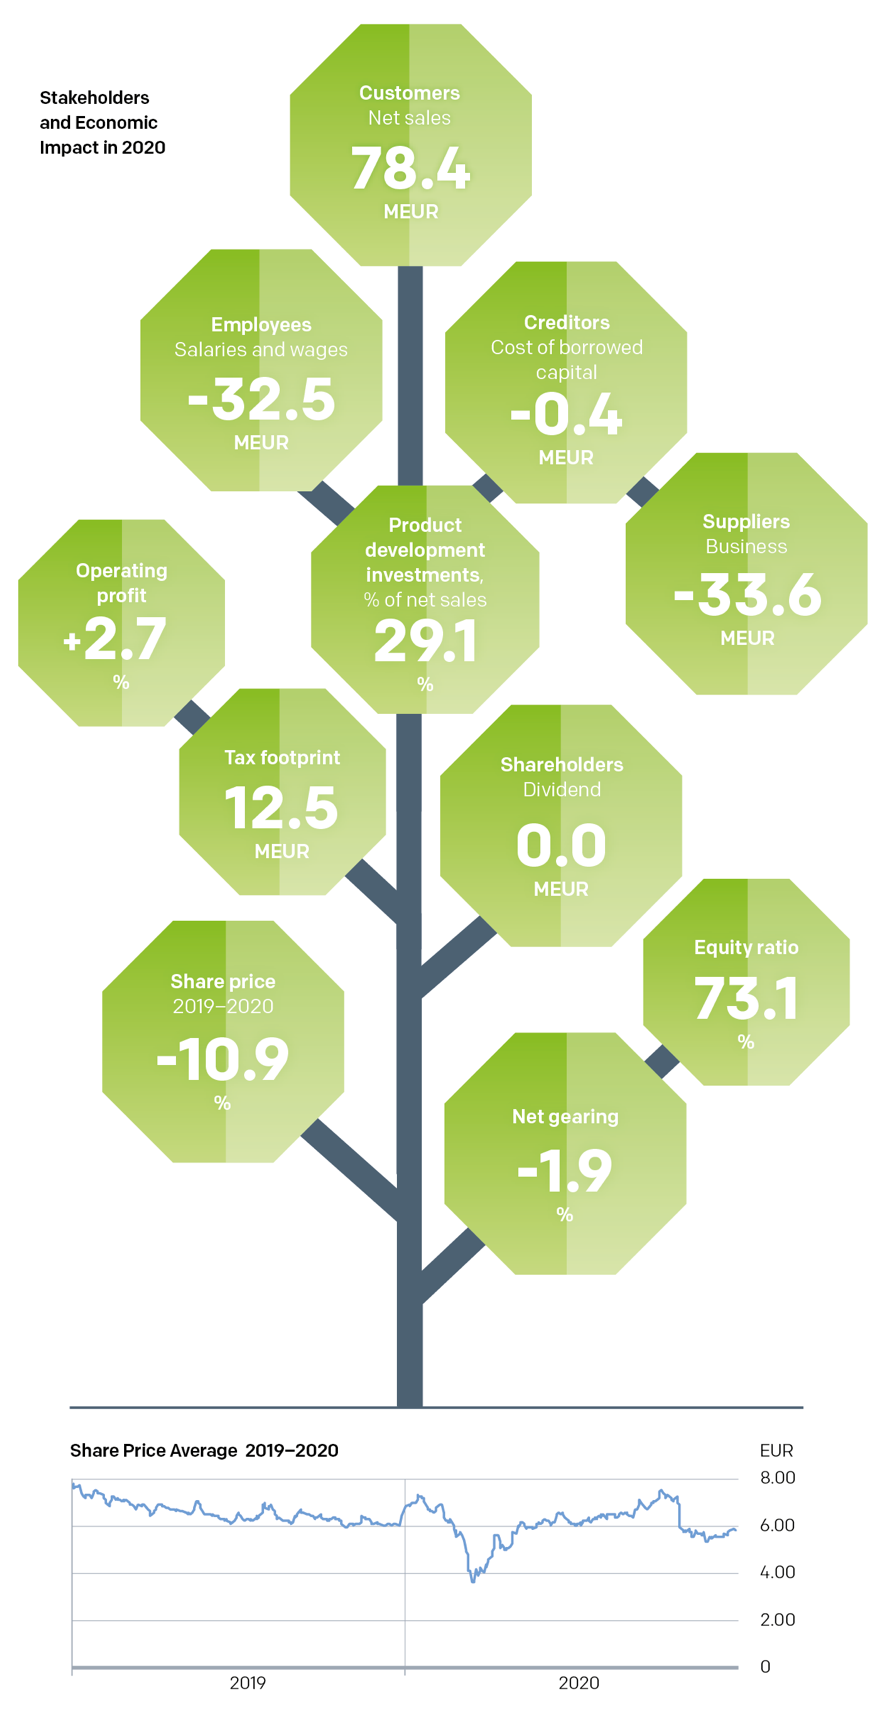 Stakeholders and Economic Impact in 2020 and Share Price Average